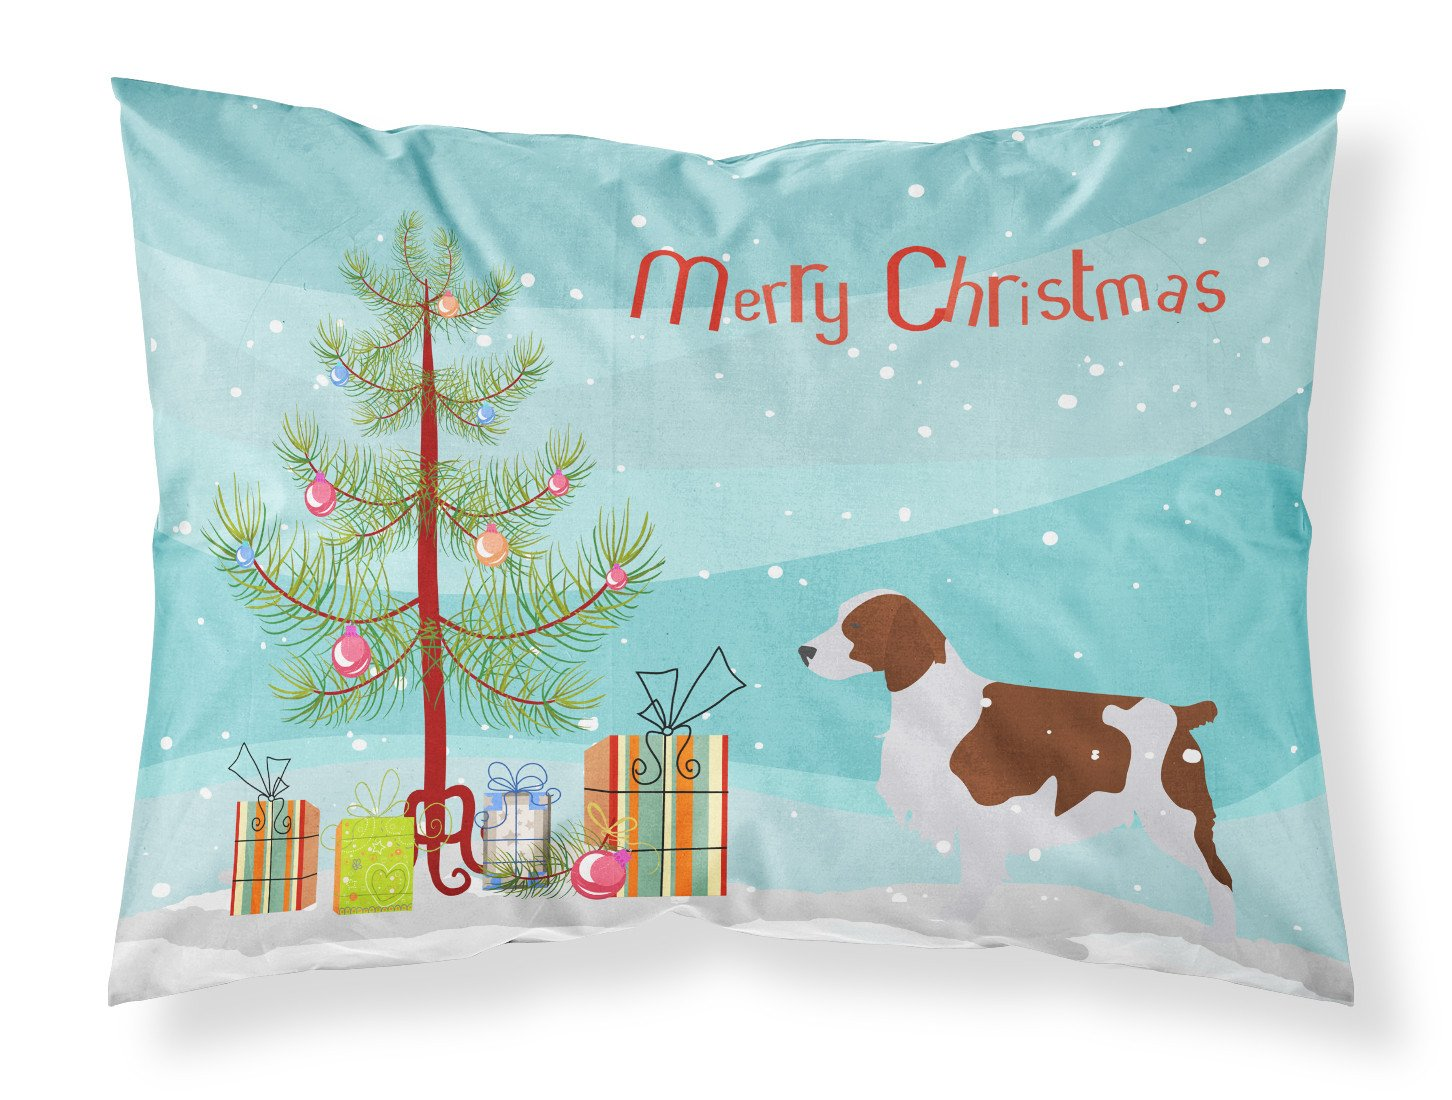 Welsh Springer Spaniel Merry Christmas Tree Fabric Standard Pillowcase BB2918PILLOWCASE by Caroline's Treasures